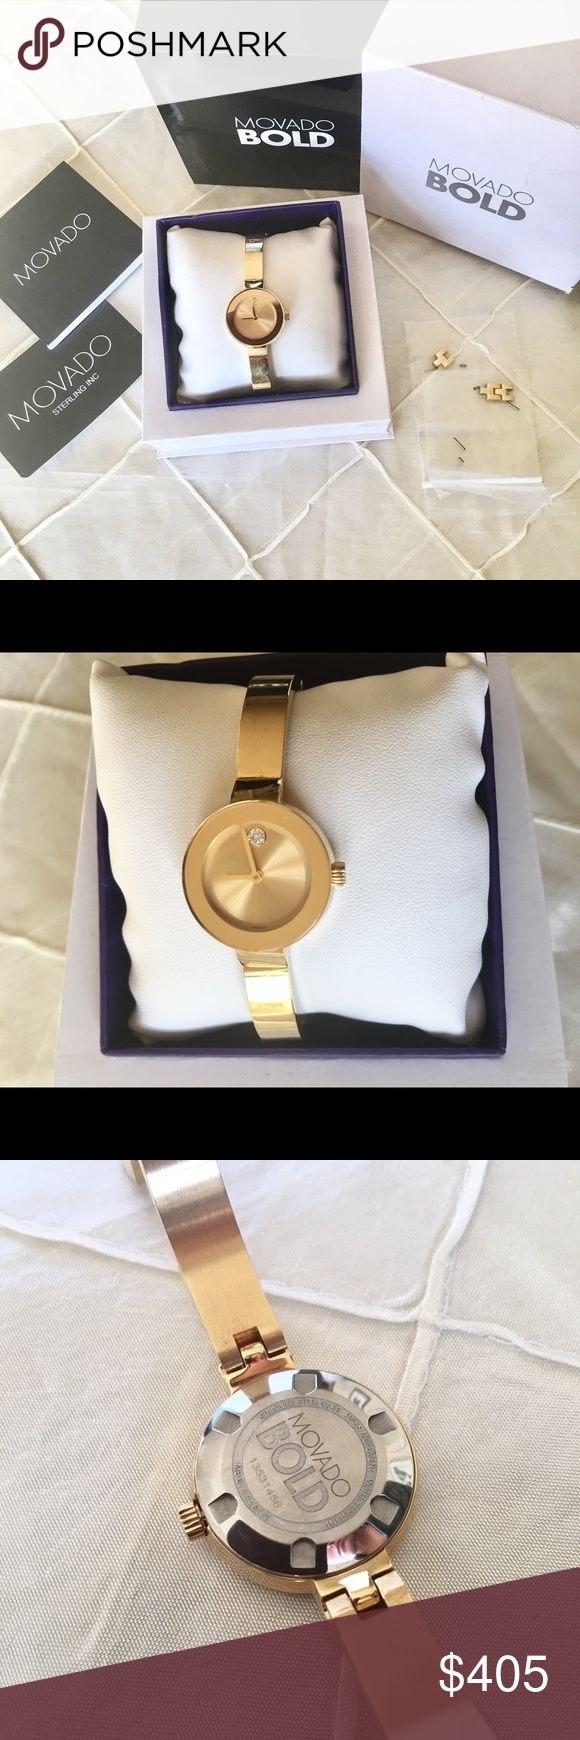 Movado BOLD yellow gold women's watch Movado BOLD watch, 25 mm yellow gold ion-plated stainless steel case, K1 crystal with a ring of highly reflective yellow gold-toned metallization, yellow gold-toned sunray dial with clear crystal-set dot and yellow gold-toned hands, yellow gold ion-plated stainless steel bangle-style bracelet with back sizing links and jewelry clasp.  Worn less than a handful of times, band in brand new condition. Pristine watch face and dial. Original links, packaging…